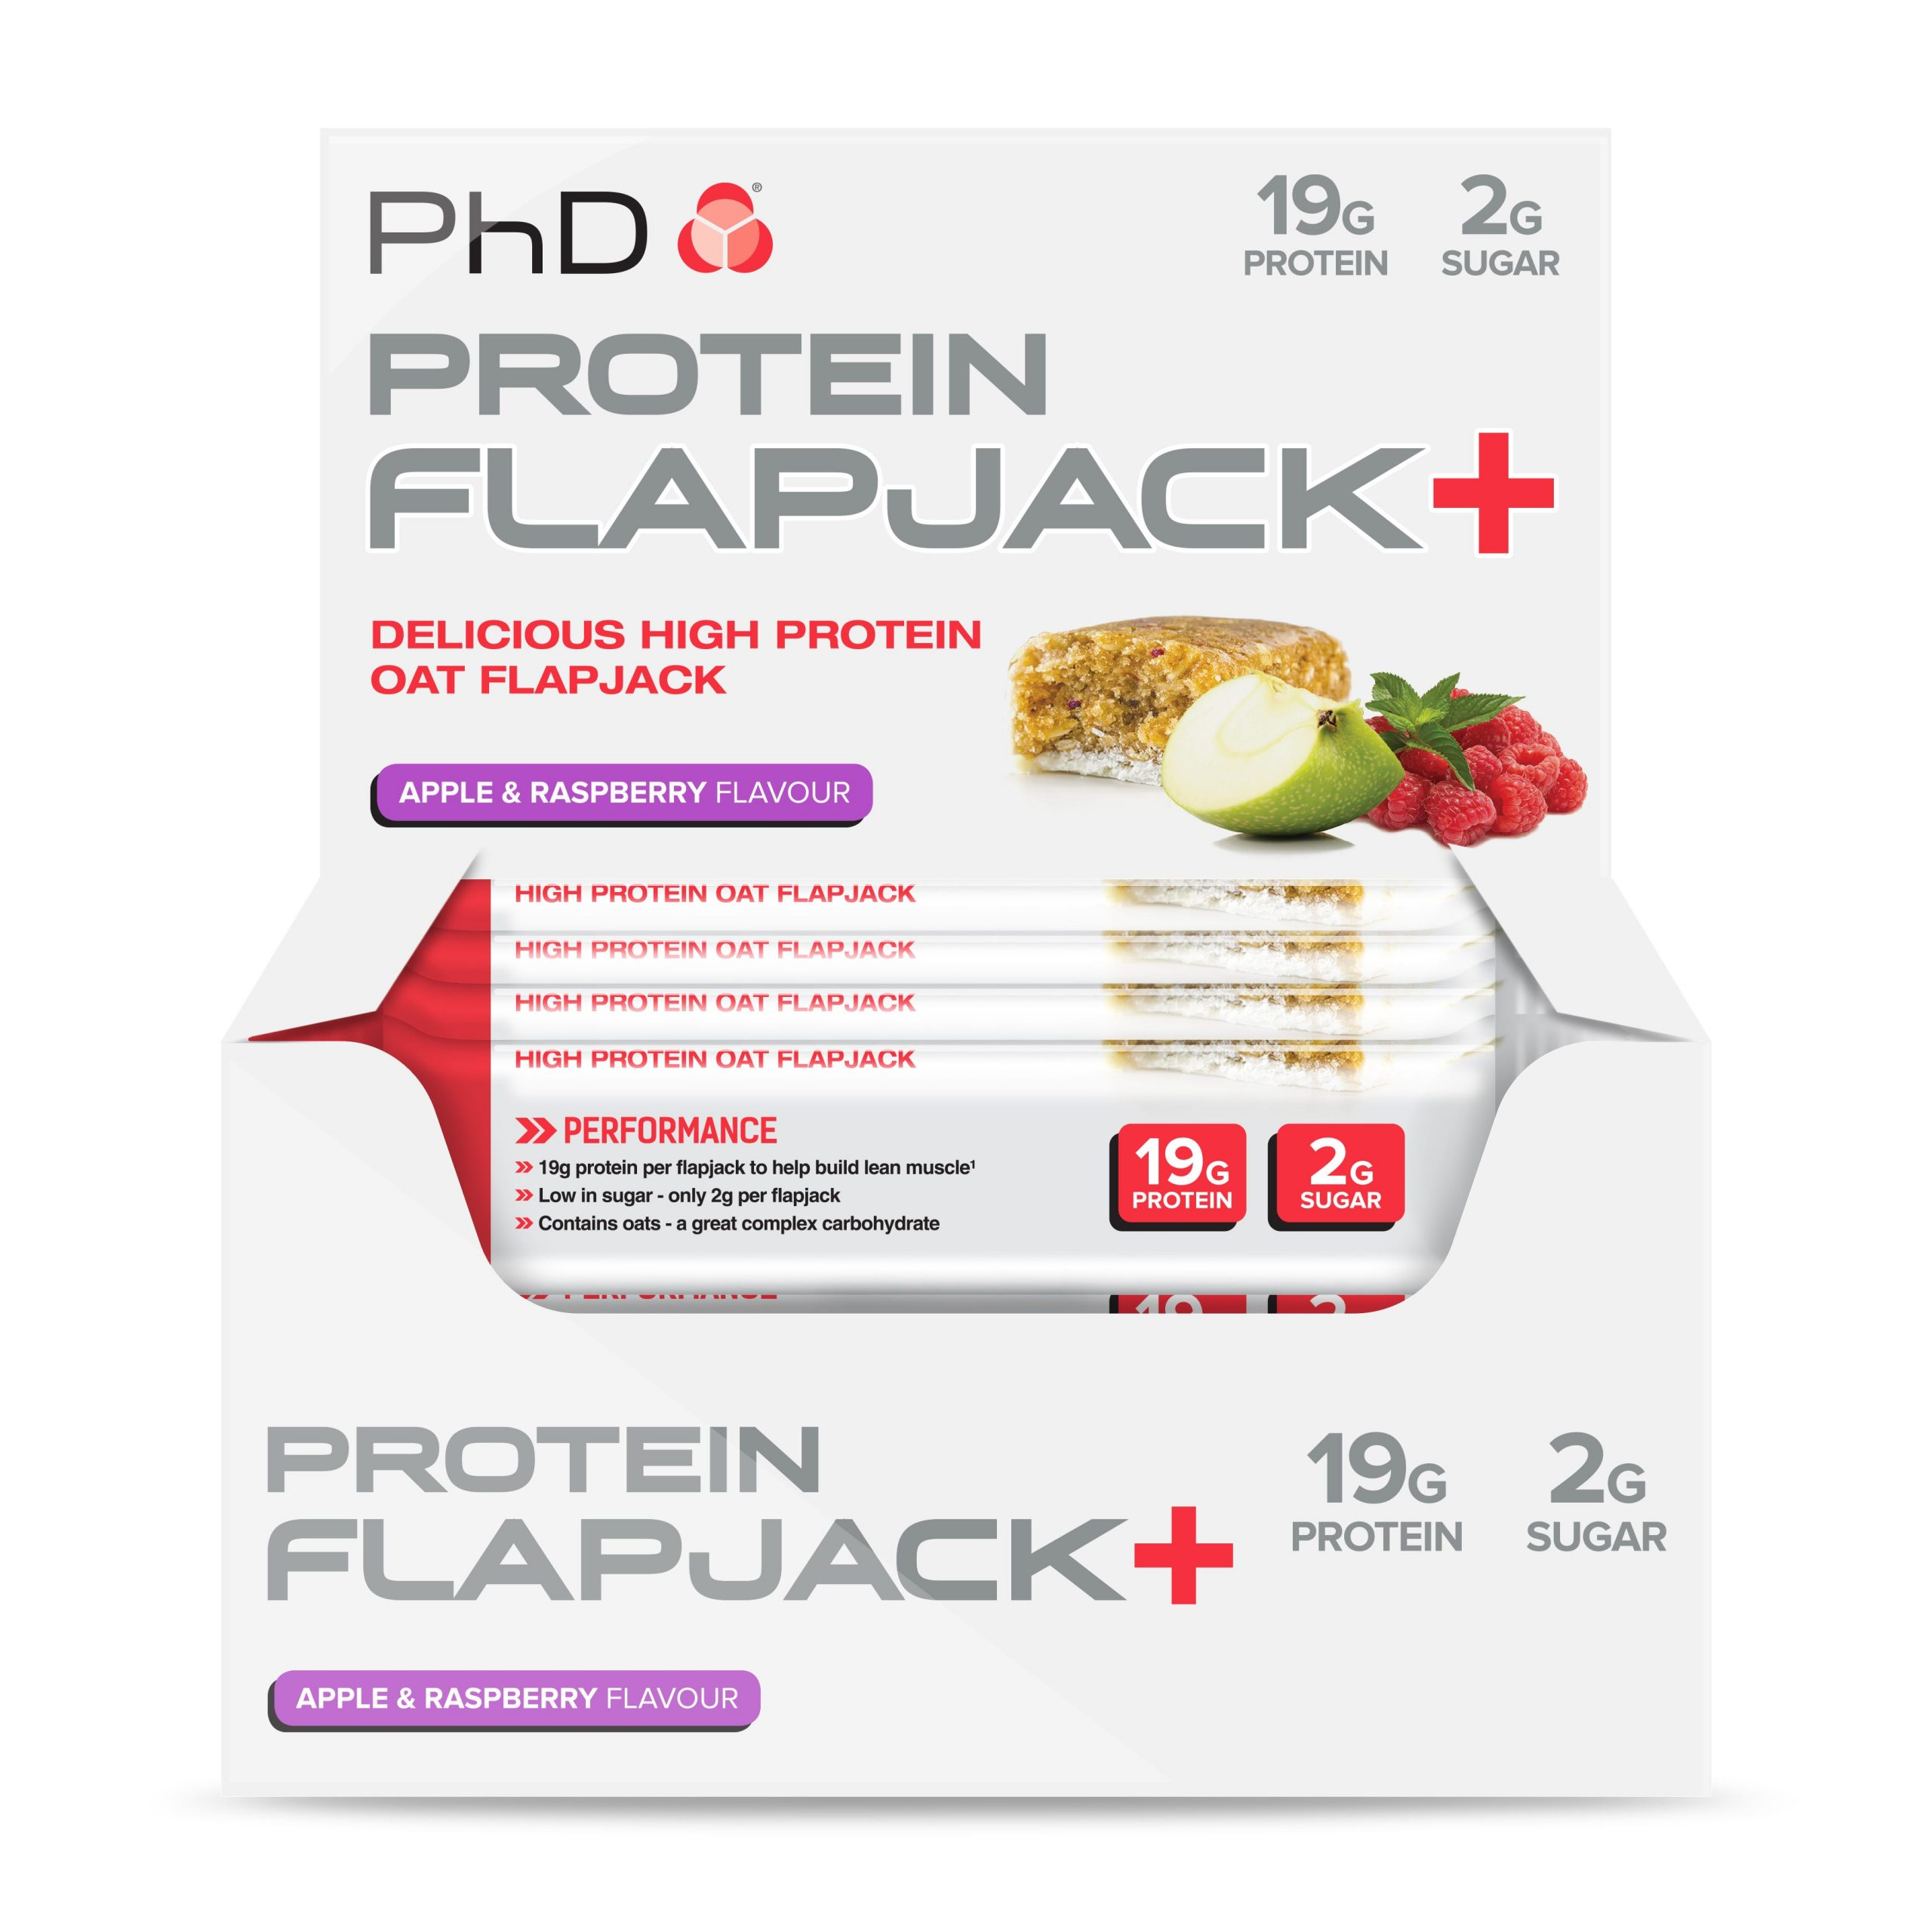 PHD Protein Flapjack+ – Apple & Raspberry